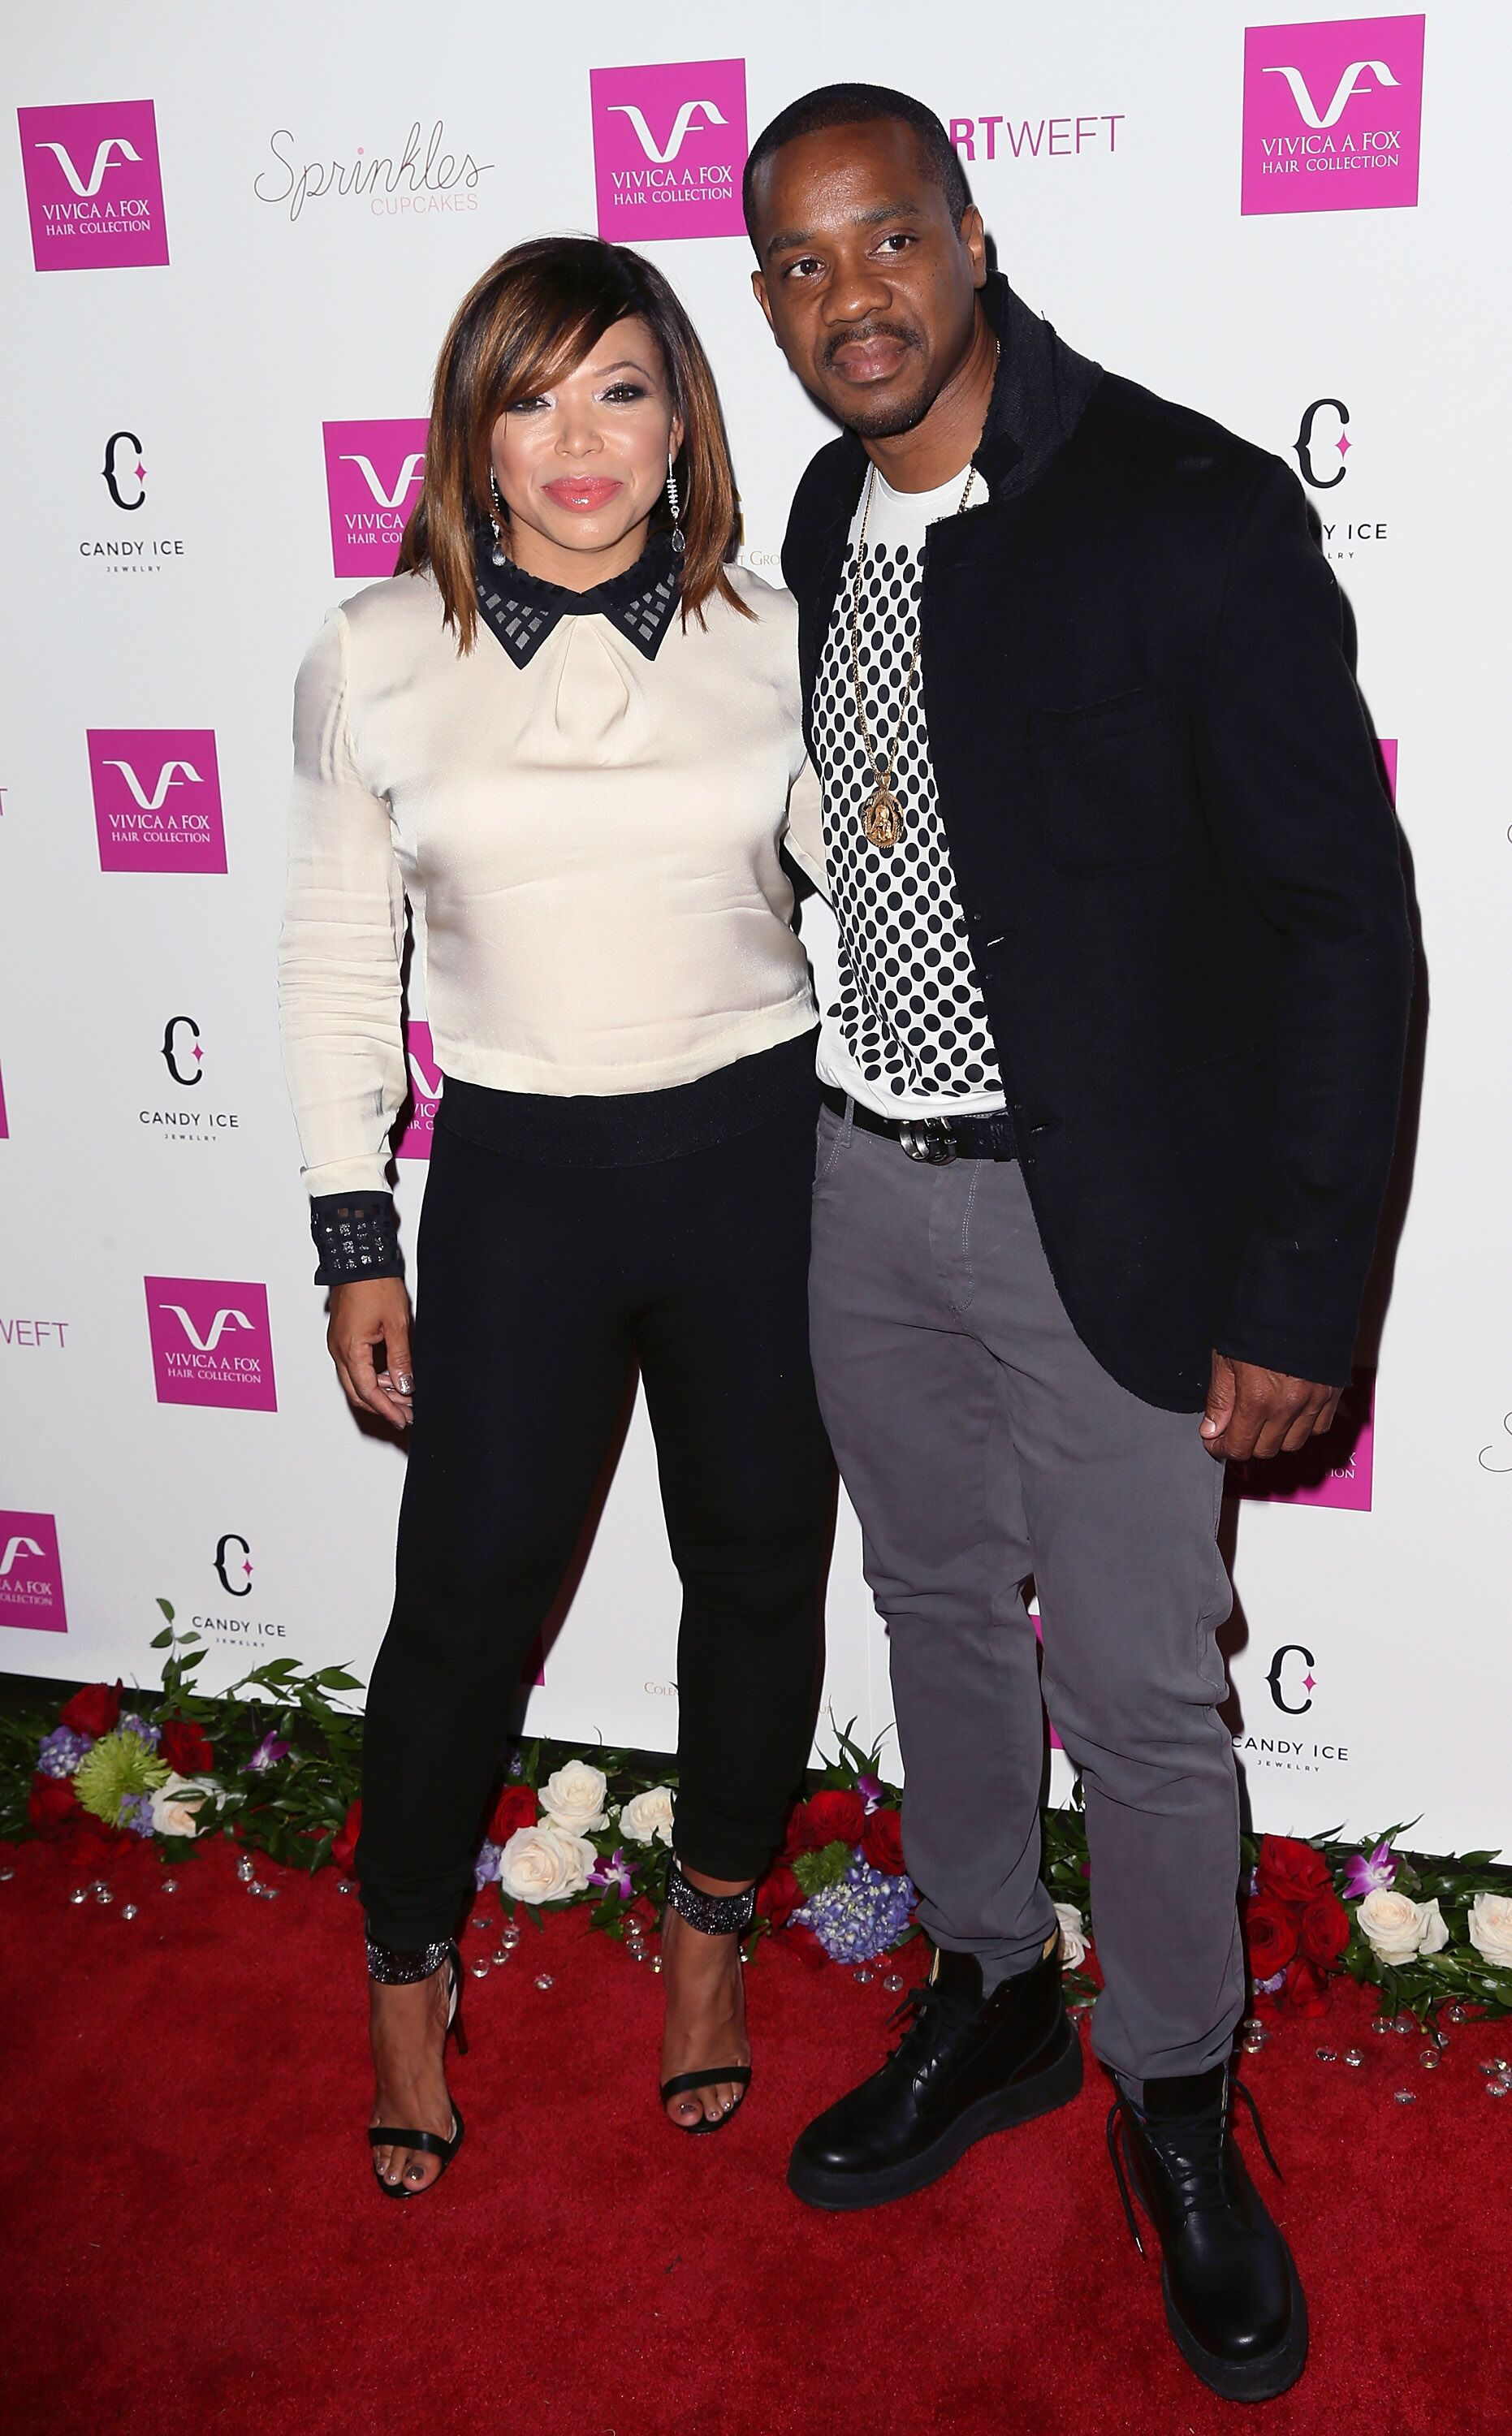 Tisha Campbell and Duane Martin at Vivica A. Fox's 50th Birthday Event | Source: Getty Images/GlobalImagesUkraine